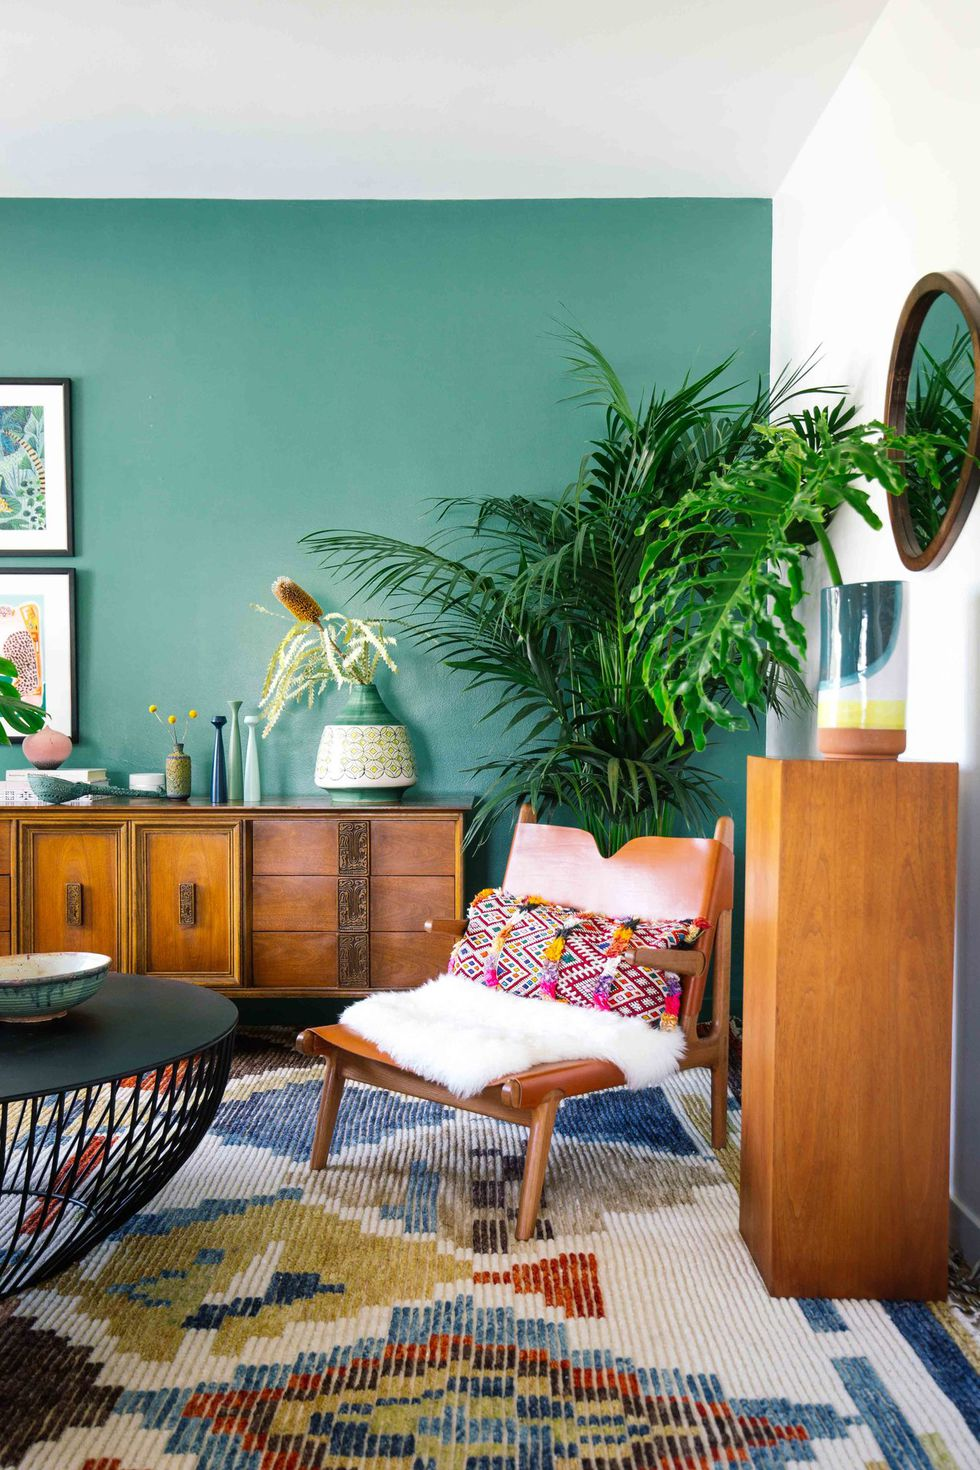 Decorating Your Living Room Walls: Upgrade Your Living Room Decor With These Incredible Wall